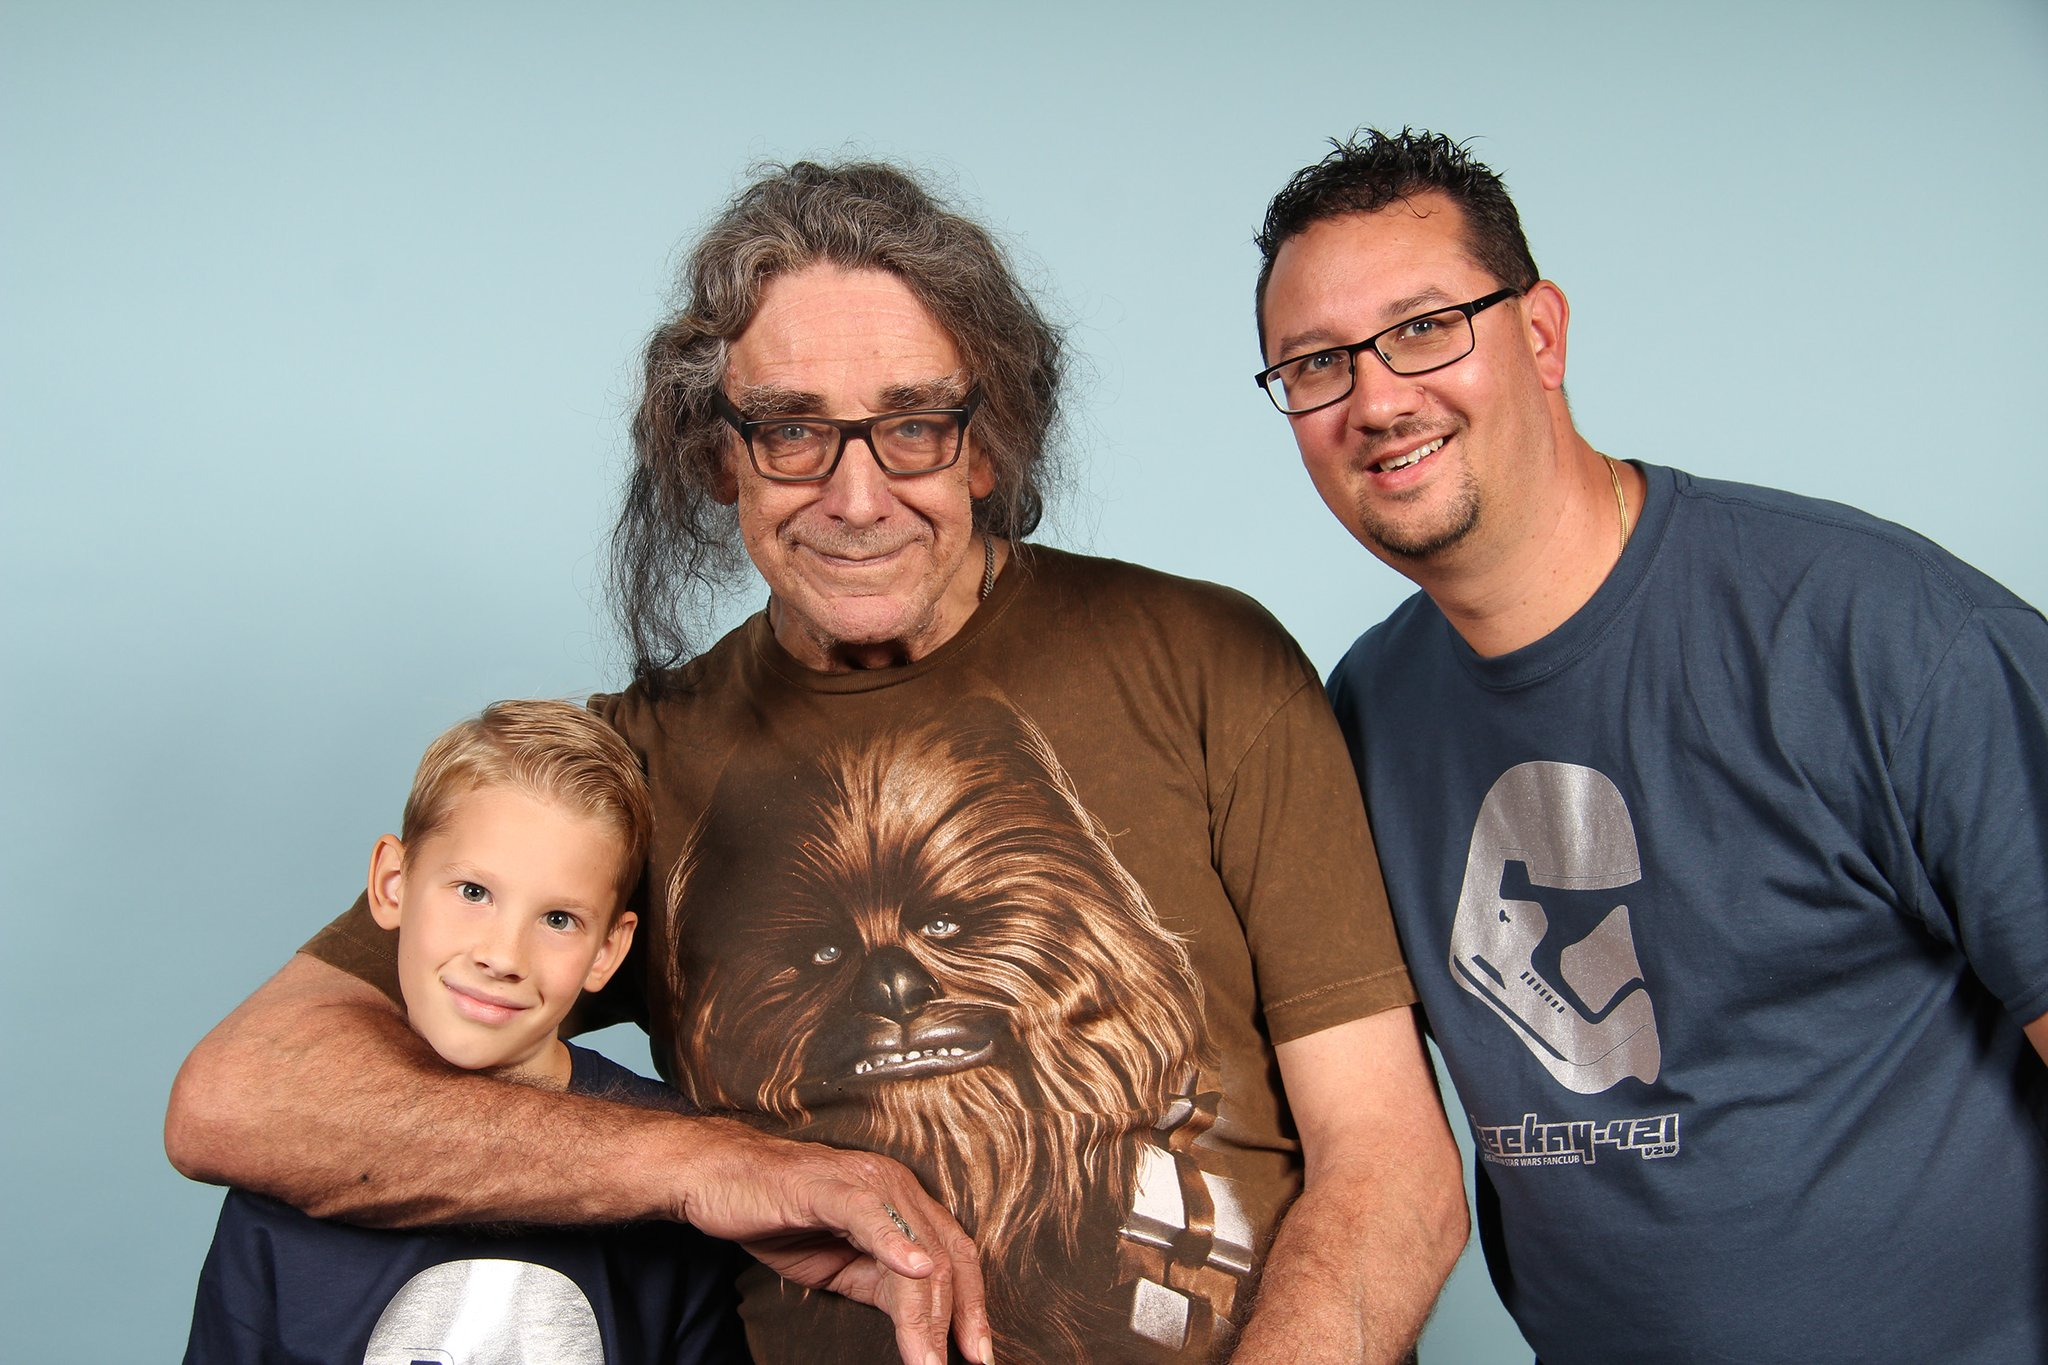 Happy Birthday Peter Mayhew, I honored to meet you!